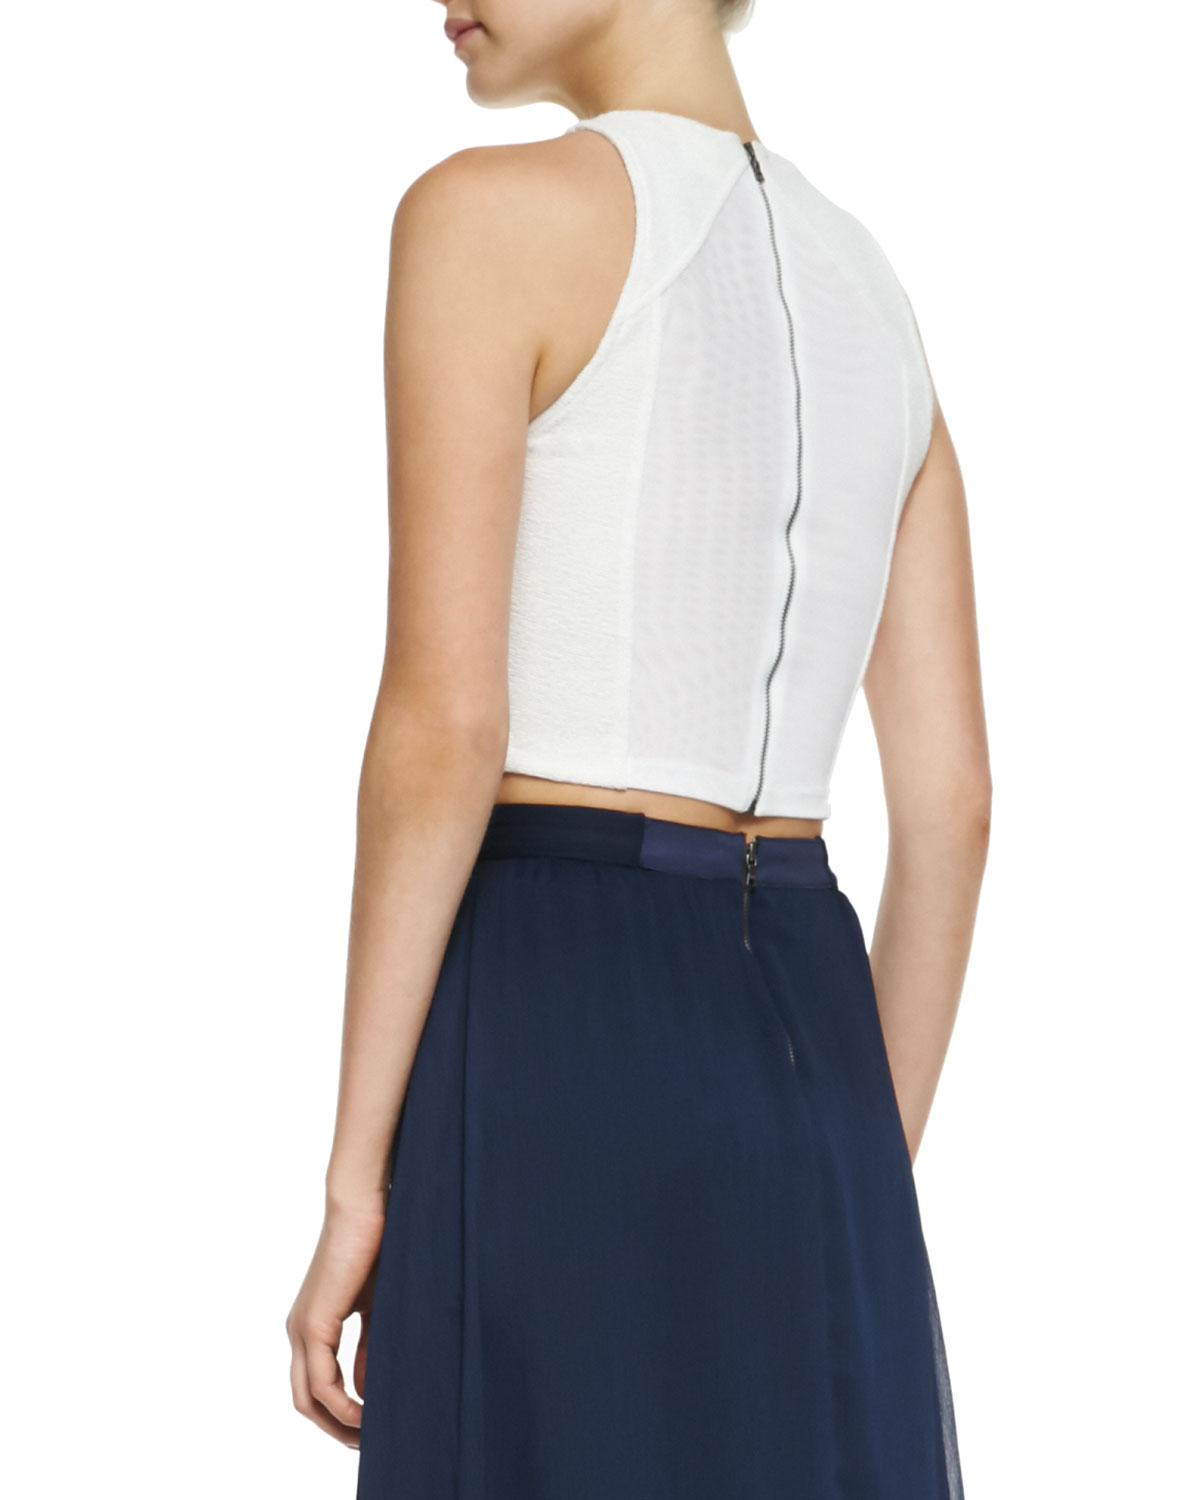 f5fe6c5eb06d60 Alice + Olivia Pire Sleeveless Crop Top in White - Lyst